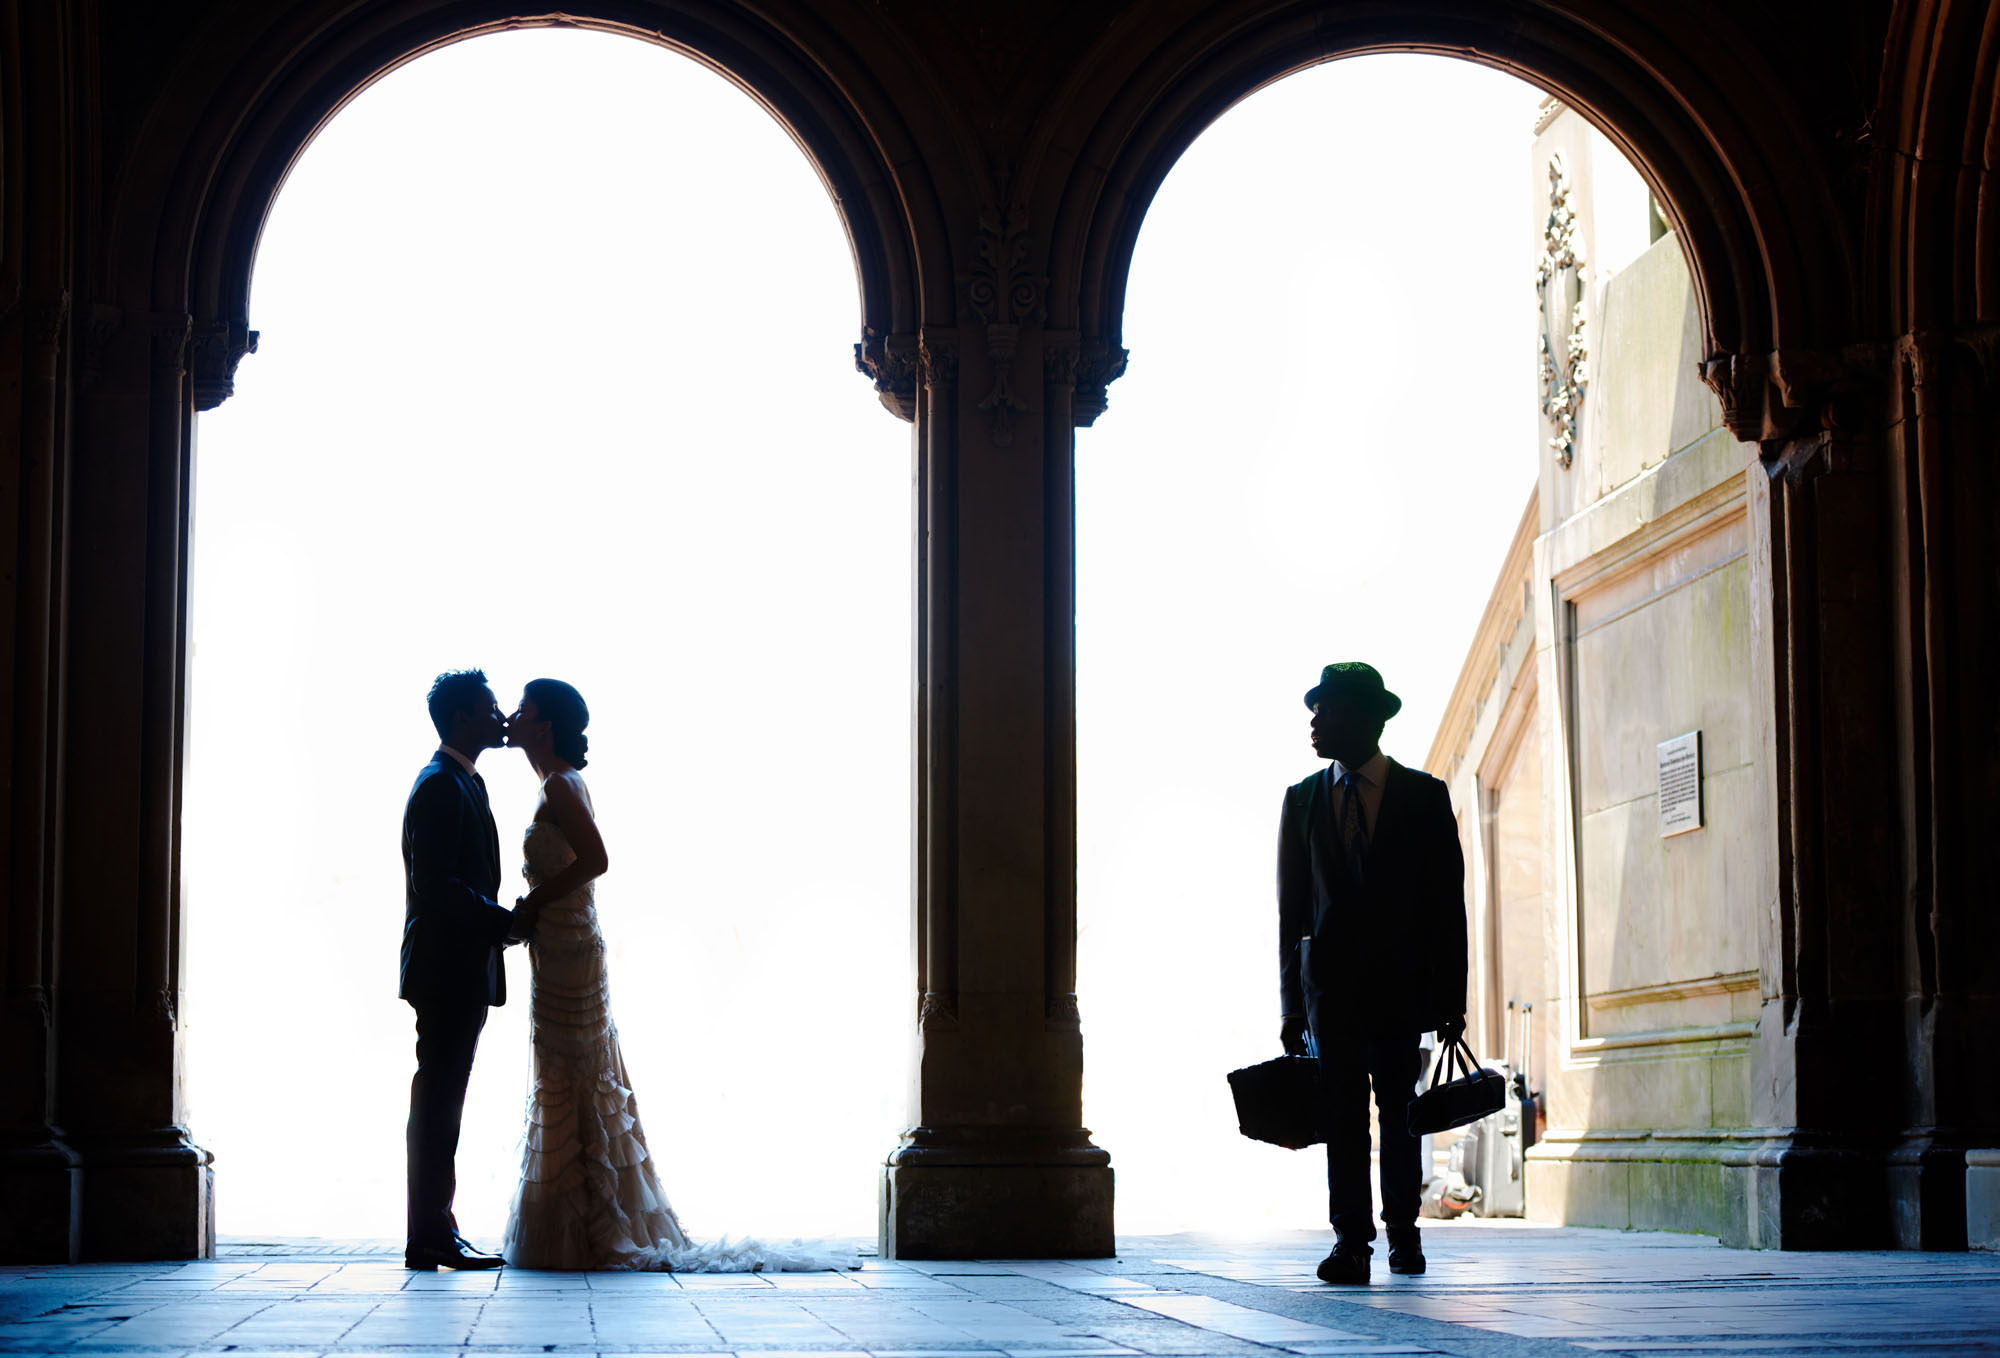 Silhouette of couple kissing under arch while stranger looks on - photo by The Brenizers